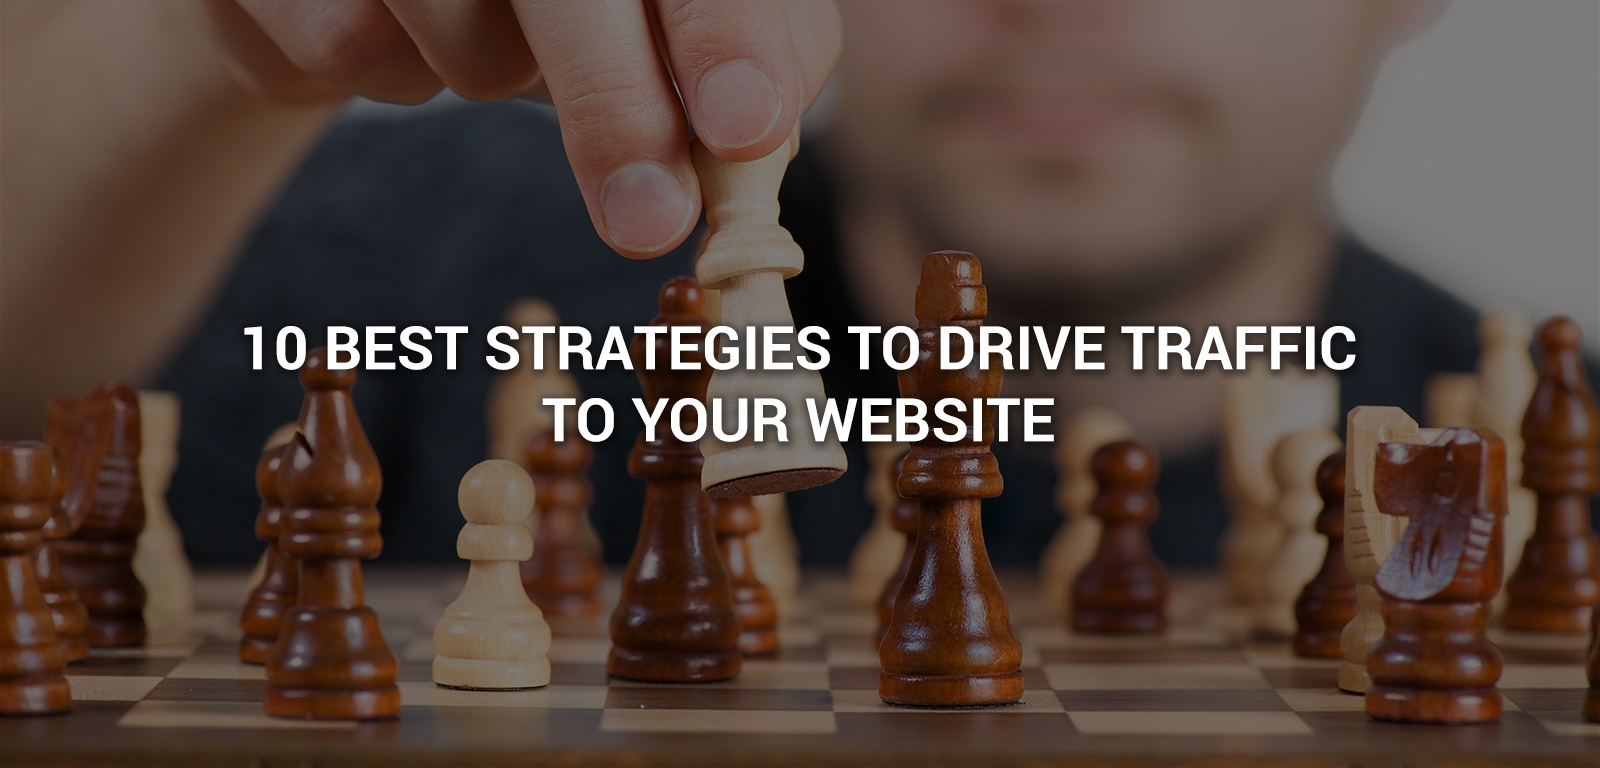 10 best strategies to drive traffic to your website